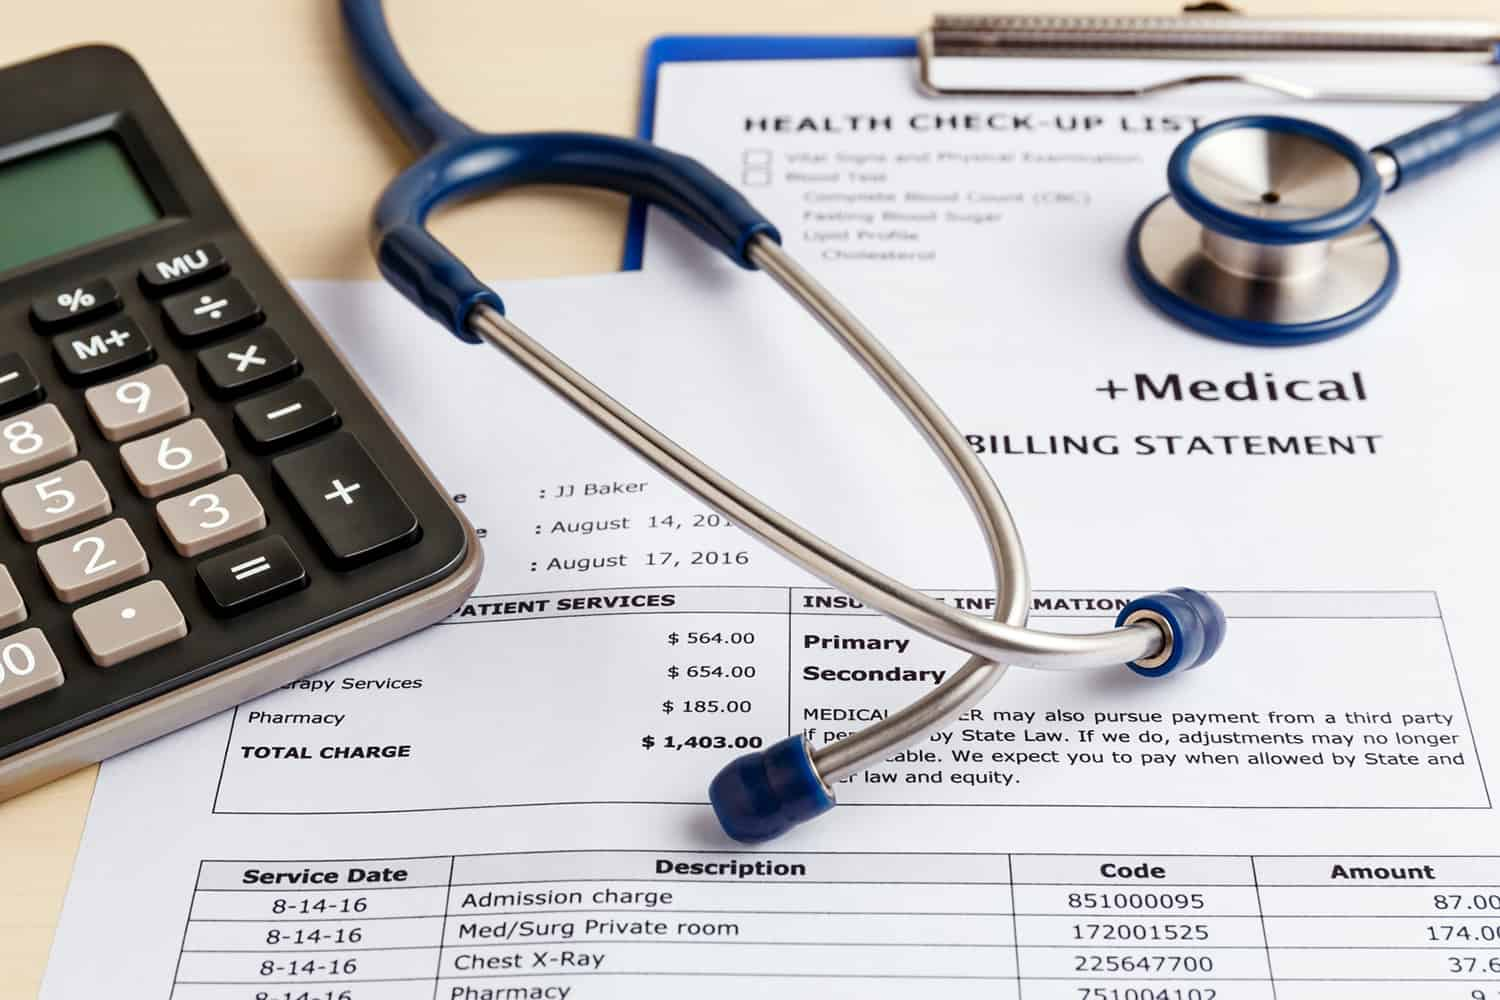 Streamline medical billing and payments with Liquid Payments